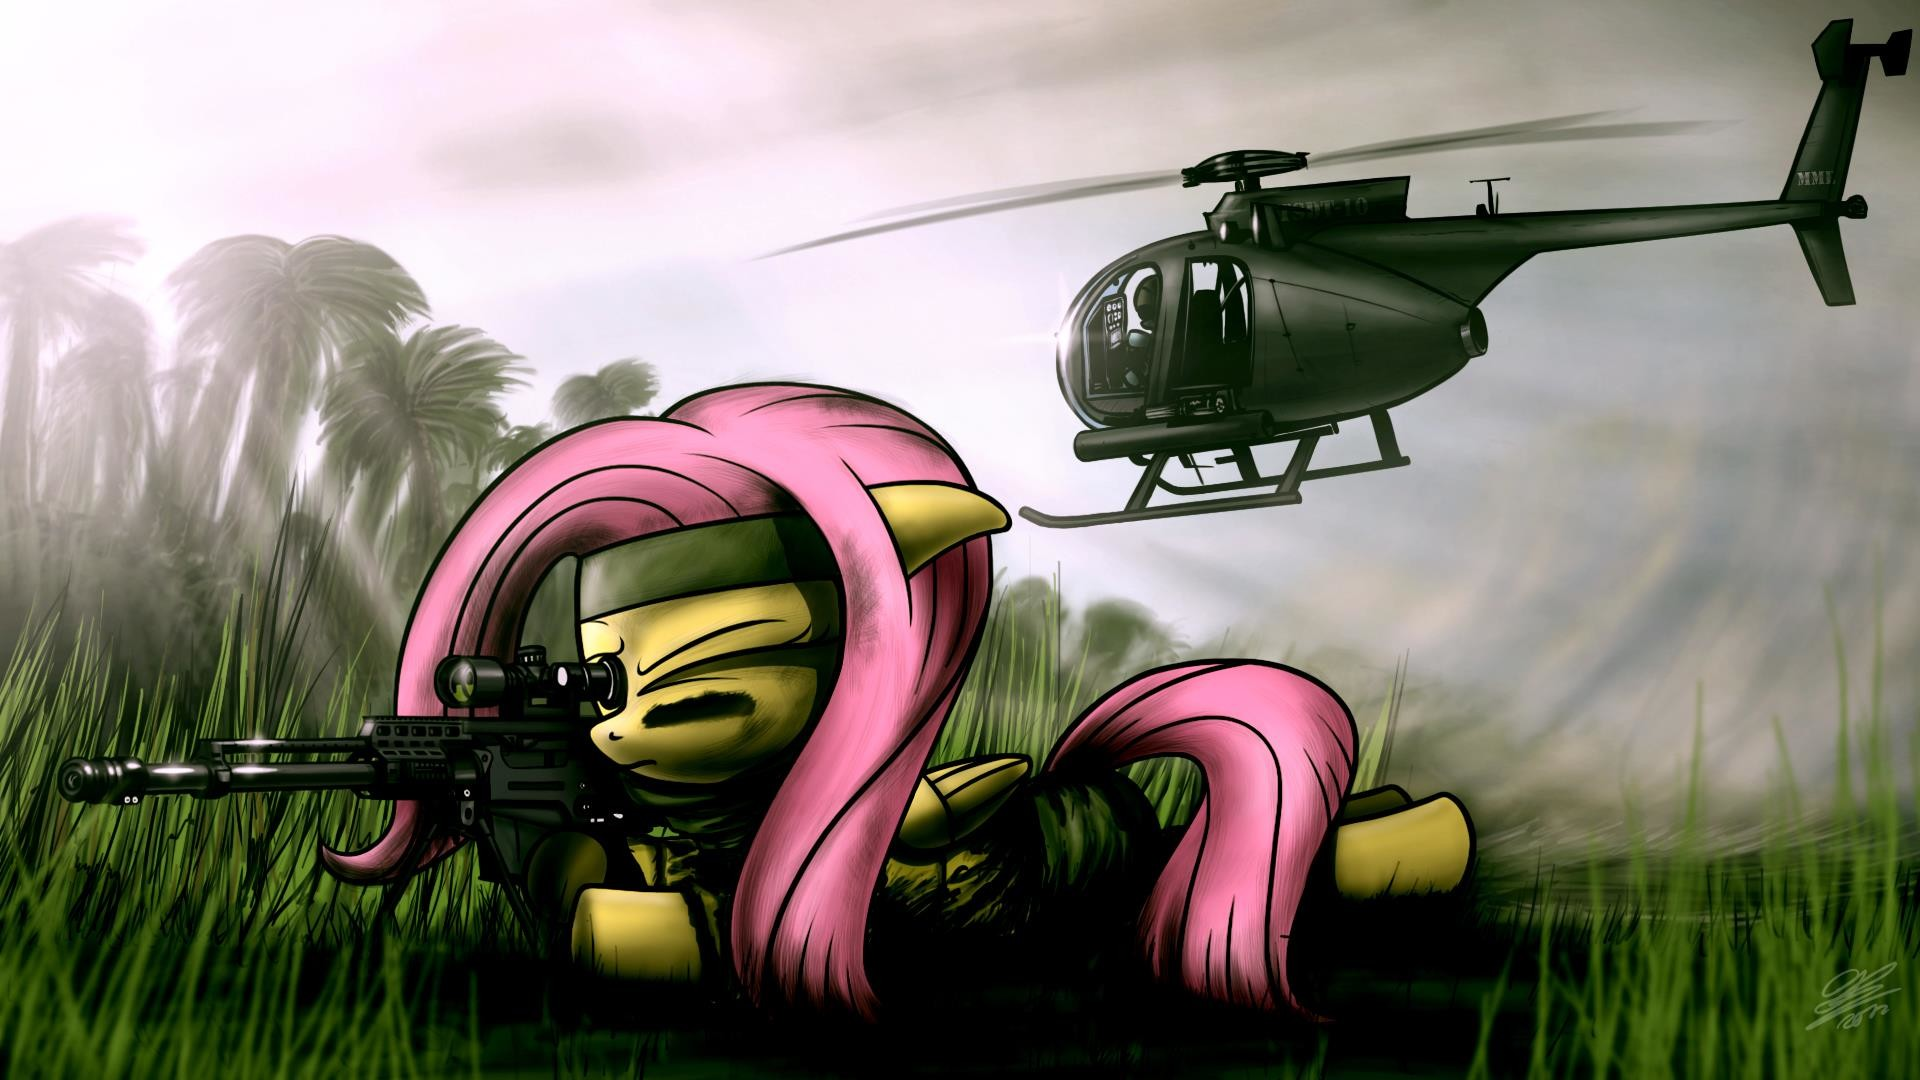 1920x1080 Helicopter My Little Pony Wallpapers.